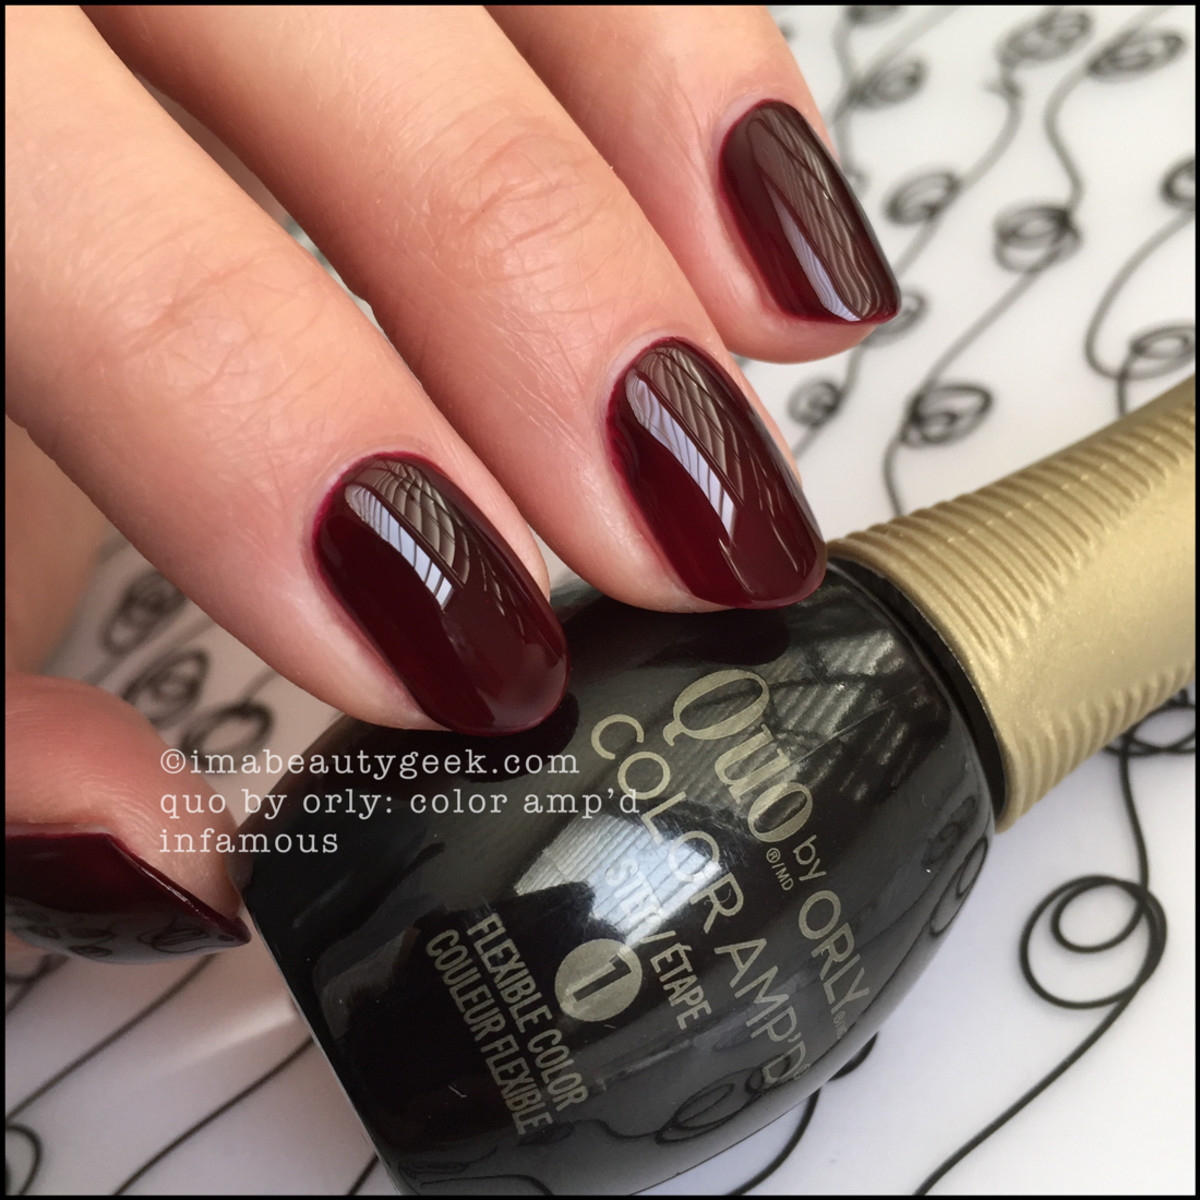 Quo Color Ampd Infamous_Quo by Orly Epix Swatches